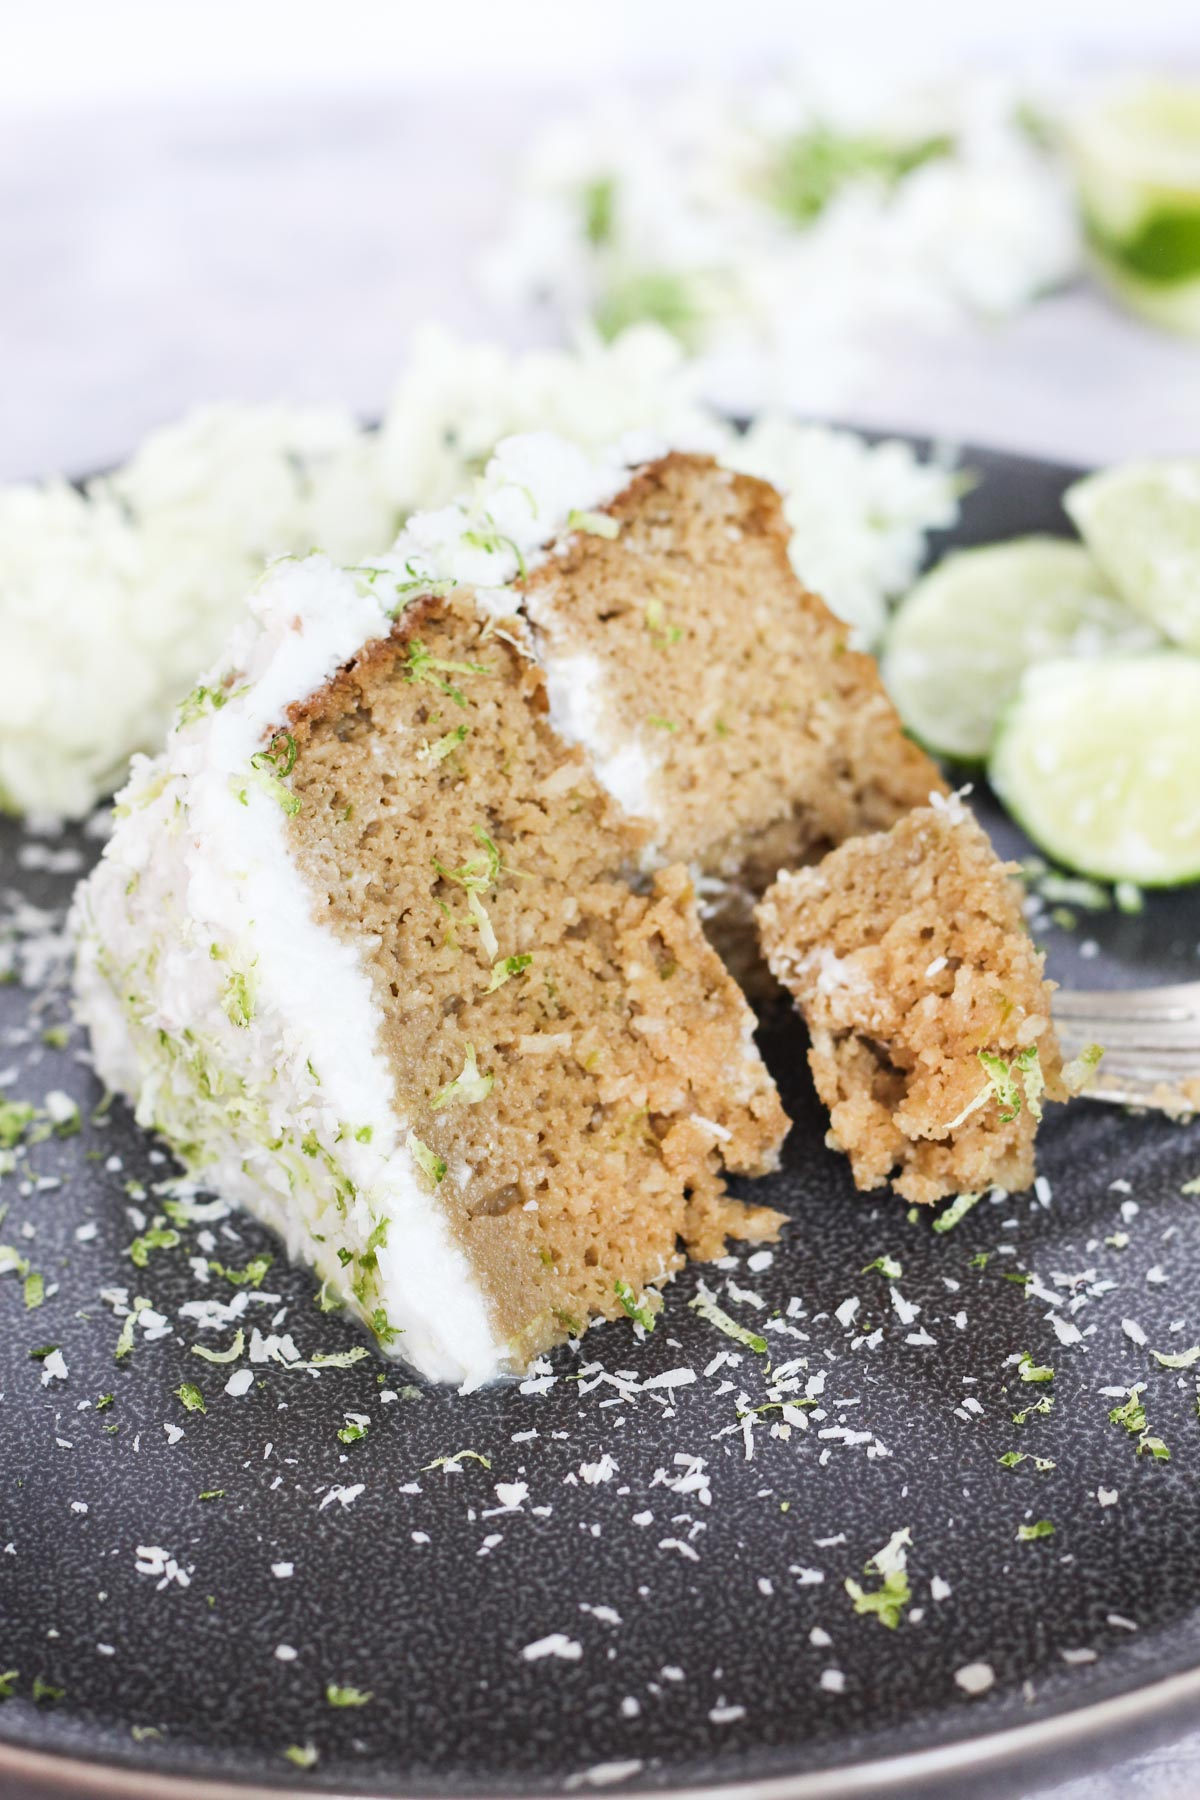 Slice of coconut lime cake on a grey plate.